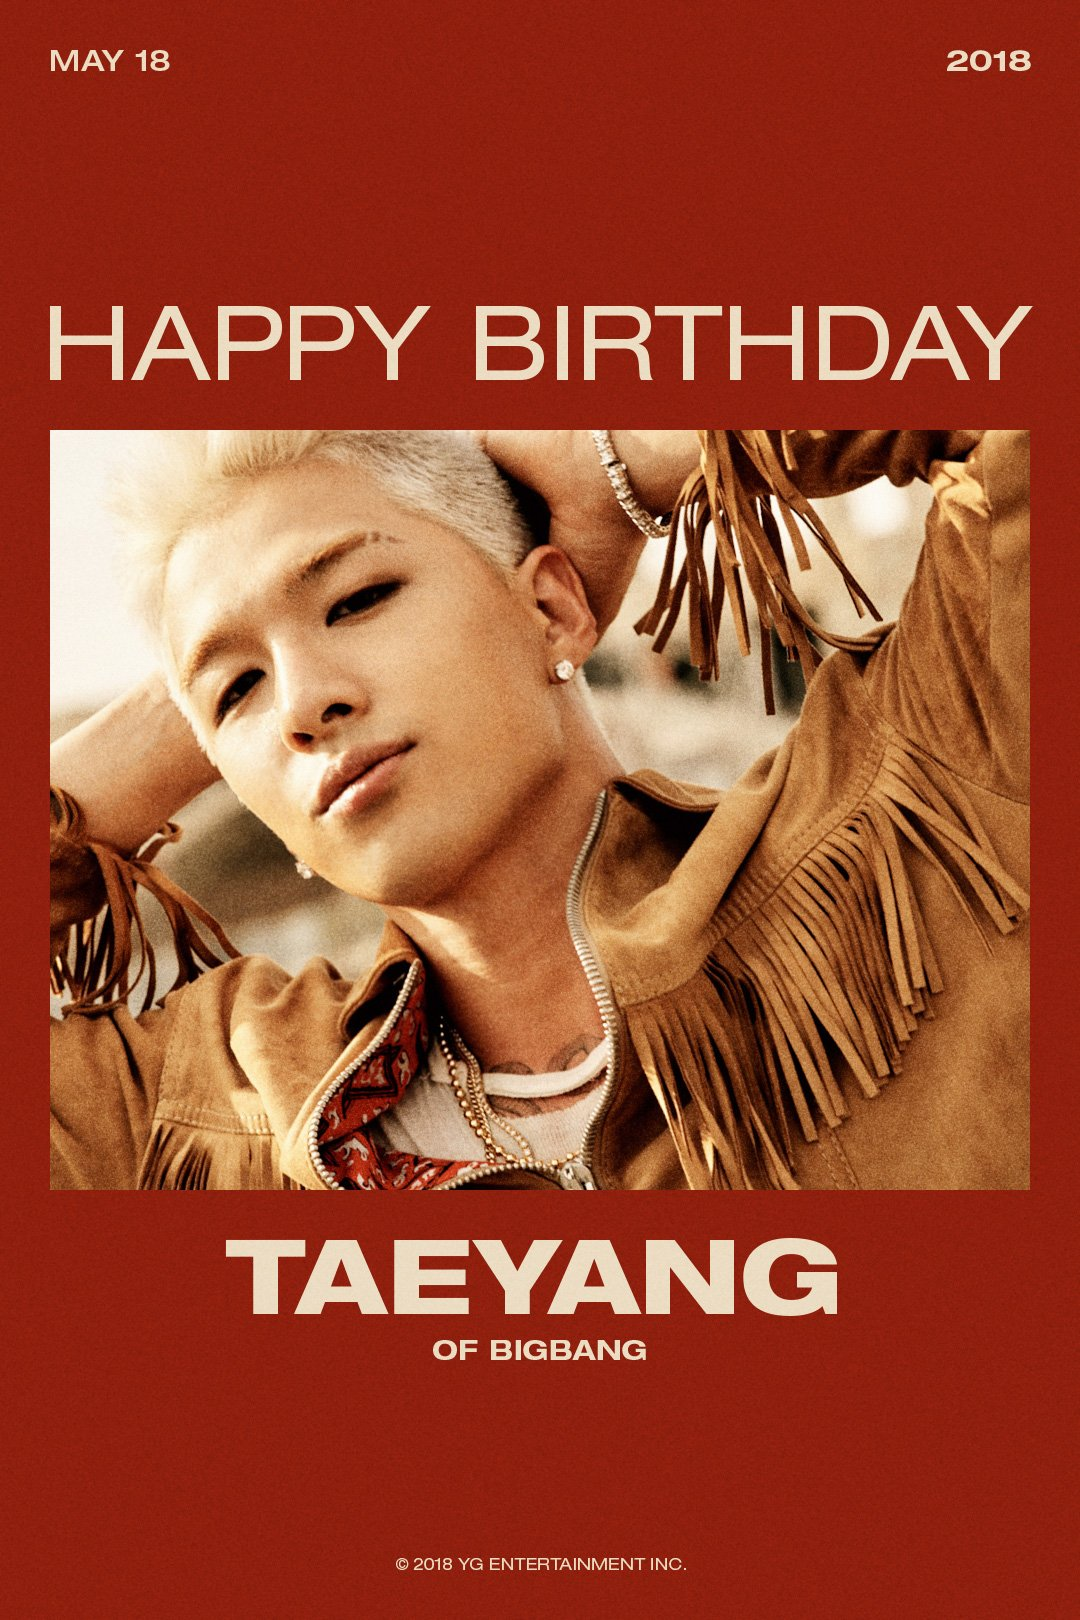 HAPPY BIRTHDAY #TAEYANG��  #2018_05_18 #HBD #태양 #YG https://t.co/QNiCcY81M3